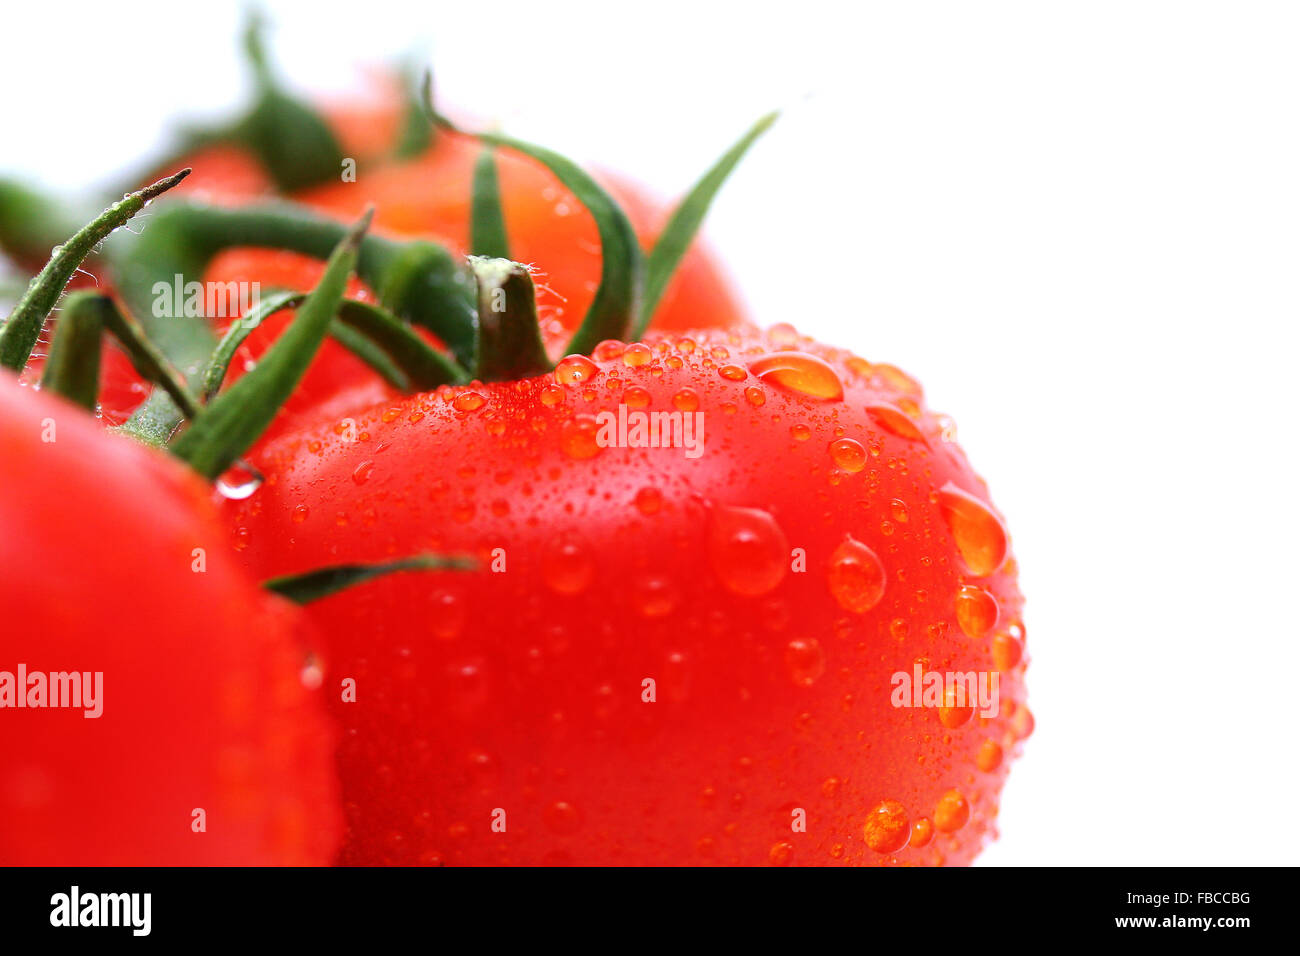 Fresh vine-ripened tomatoes on a white background - Stock Image